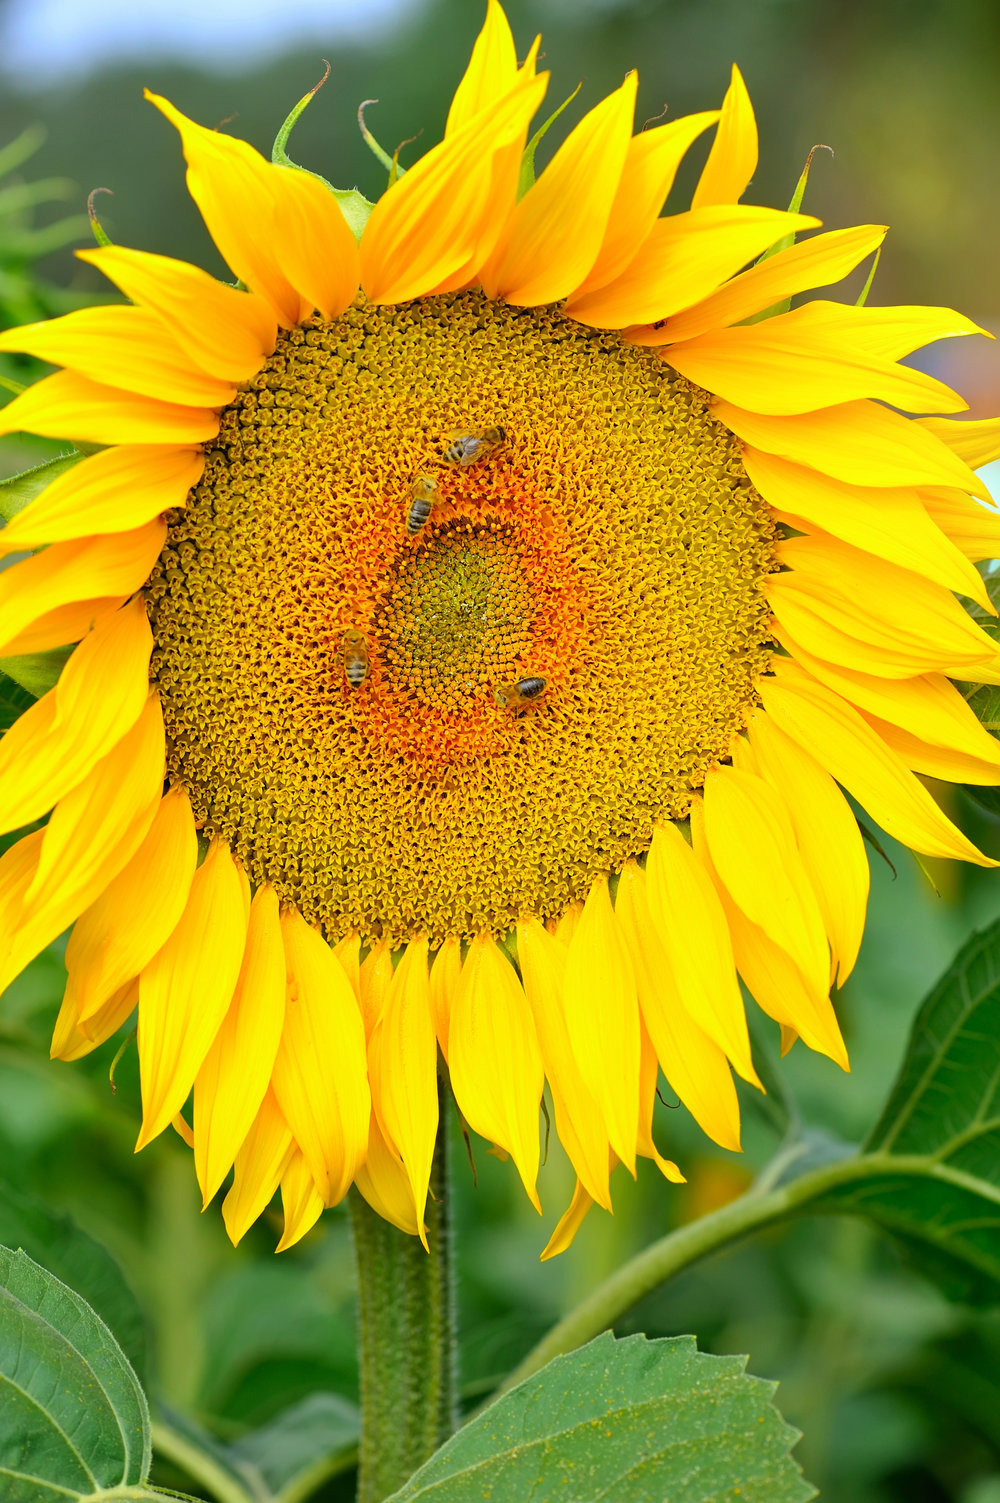 honey-bee-pollinating-sunflower-in-field-of-PHPT268.jpg